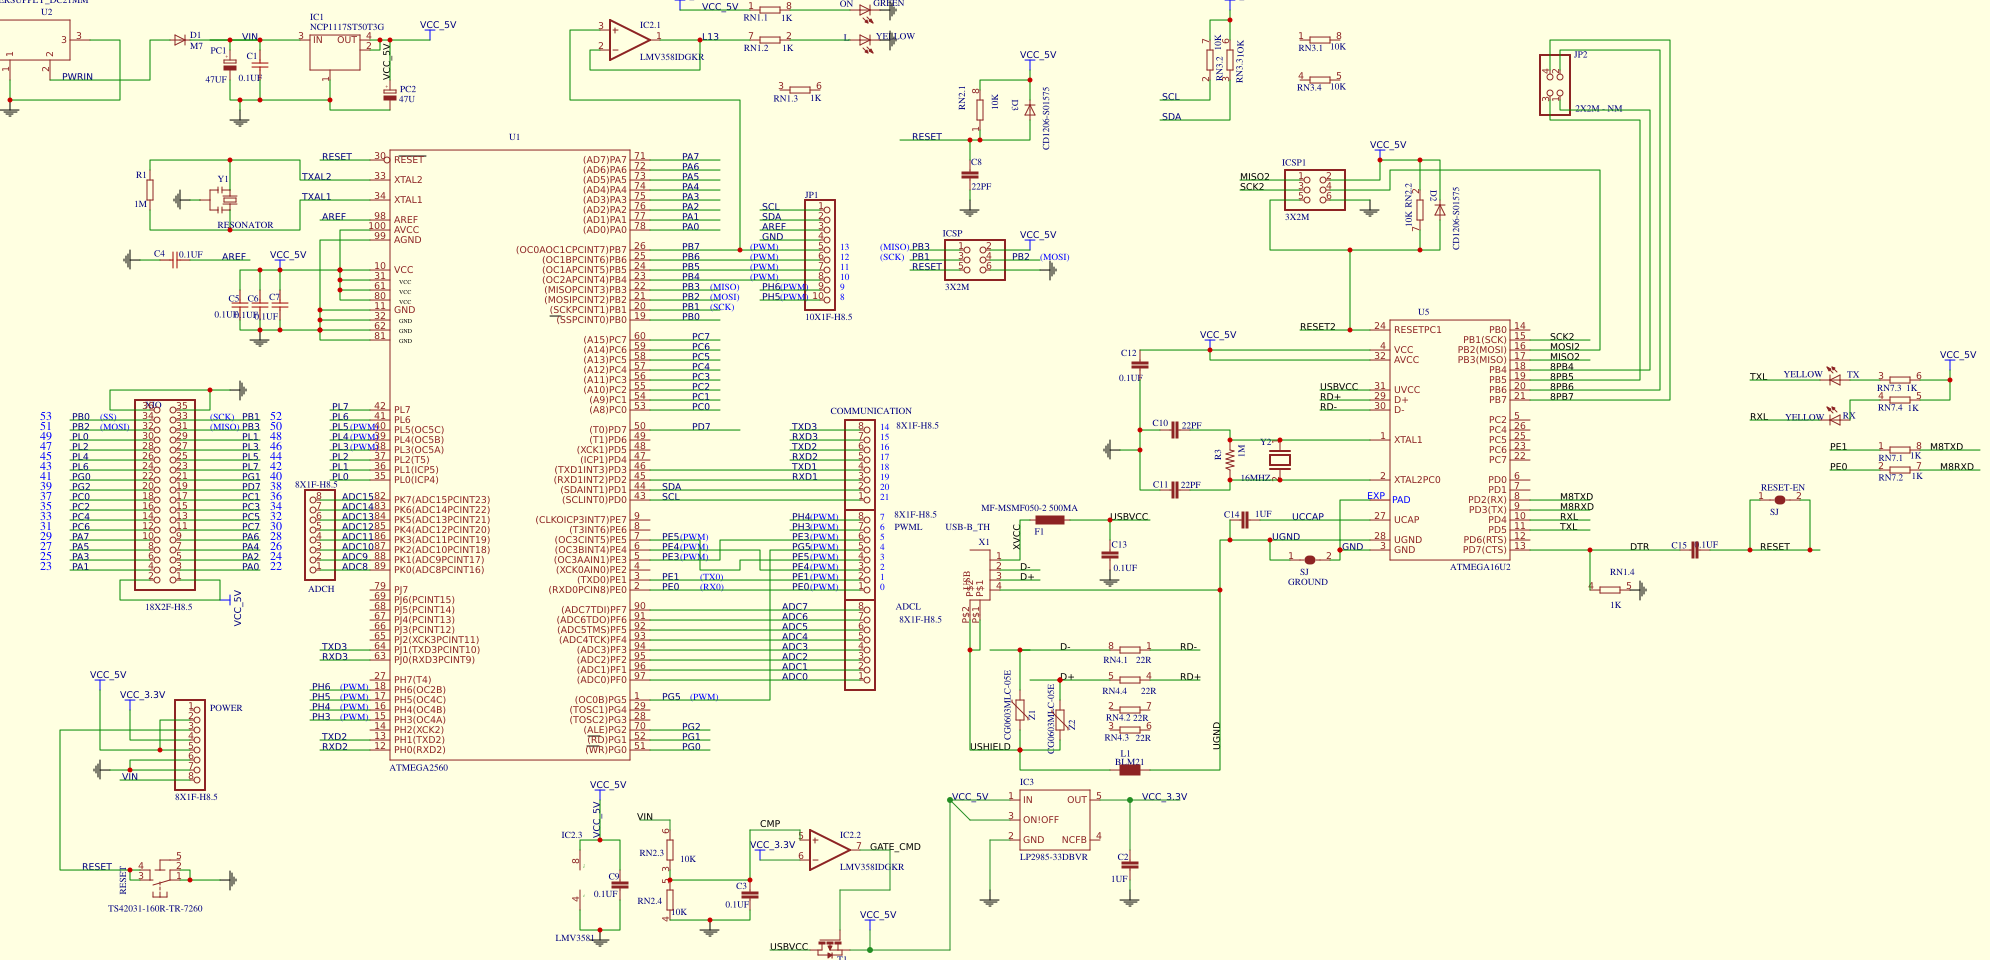 arduino+mega+2560+schematic - Search - EasA on ipad schematic, atmega328 schematic, apple schematic, wiring schematic, robot schematic, atmega32u4 schematic, audio schematic, servo schematic, iphone schematic, breadboard schematic, msp430 schematic, pcb schematic, wireless schematic, shields schematic,